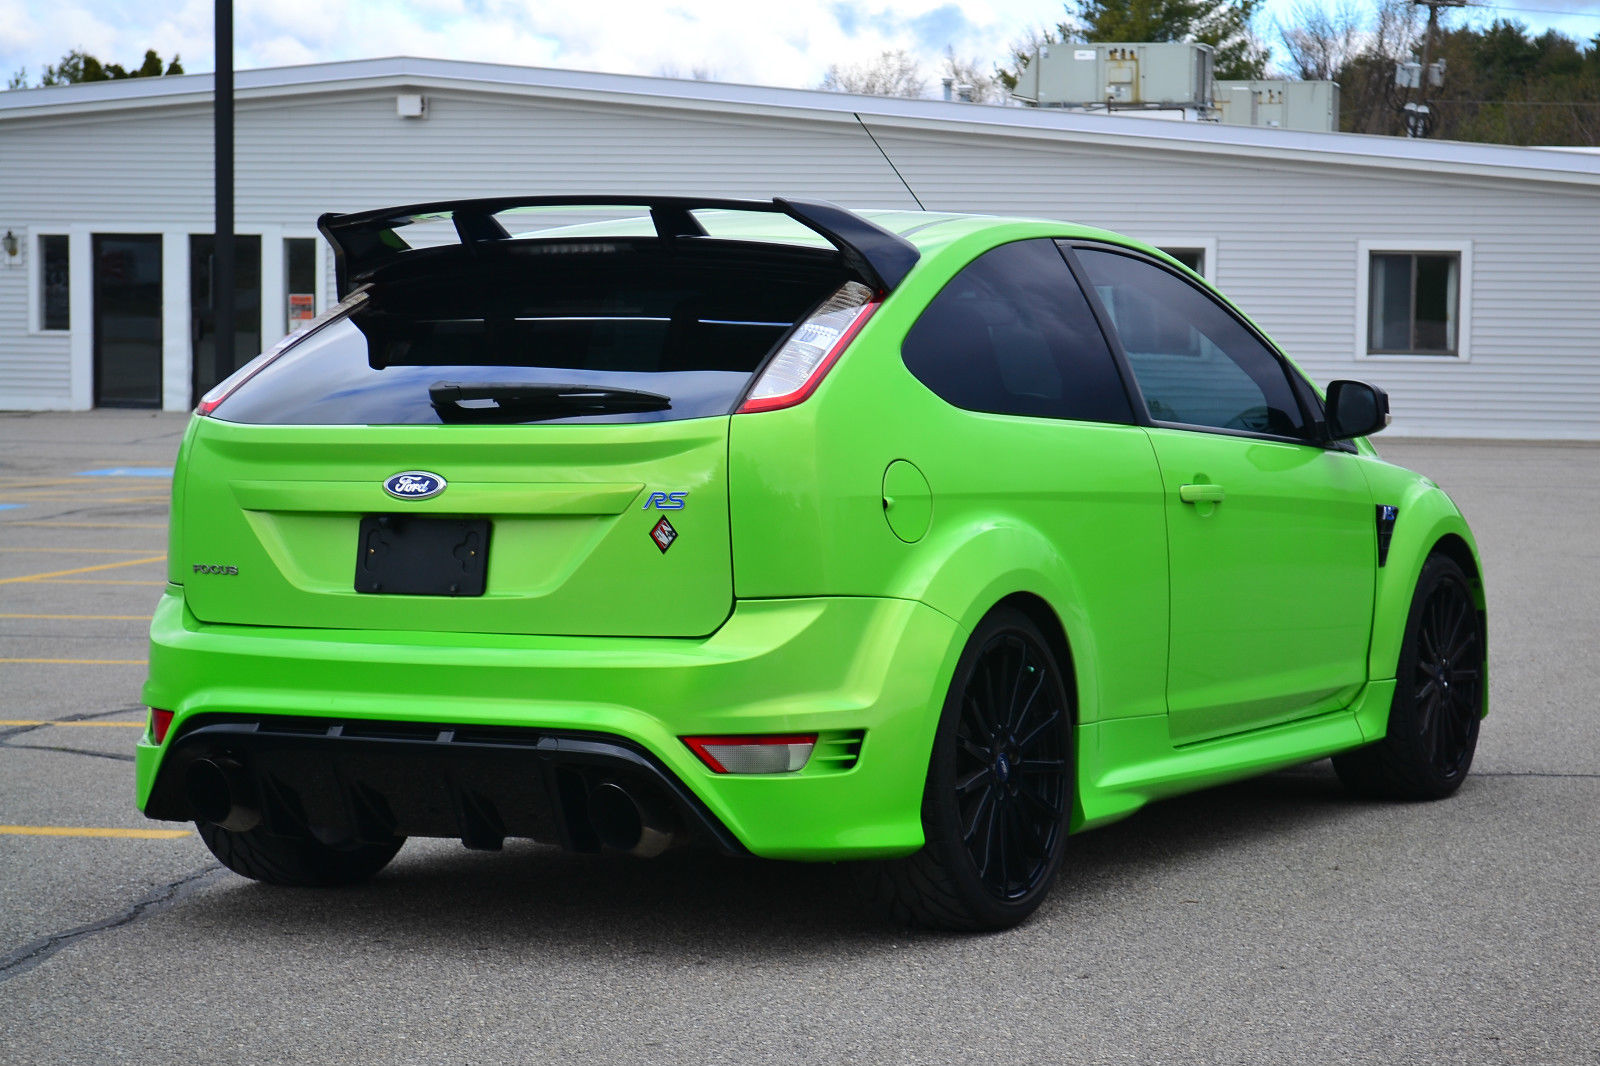 ebay find a questionably legal 2010 ford focus rs for sale in vermont. Black Bedroom Furniture Sets. Home Design Ideas